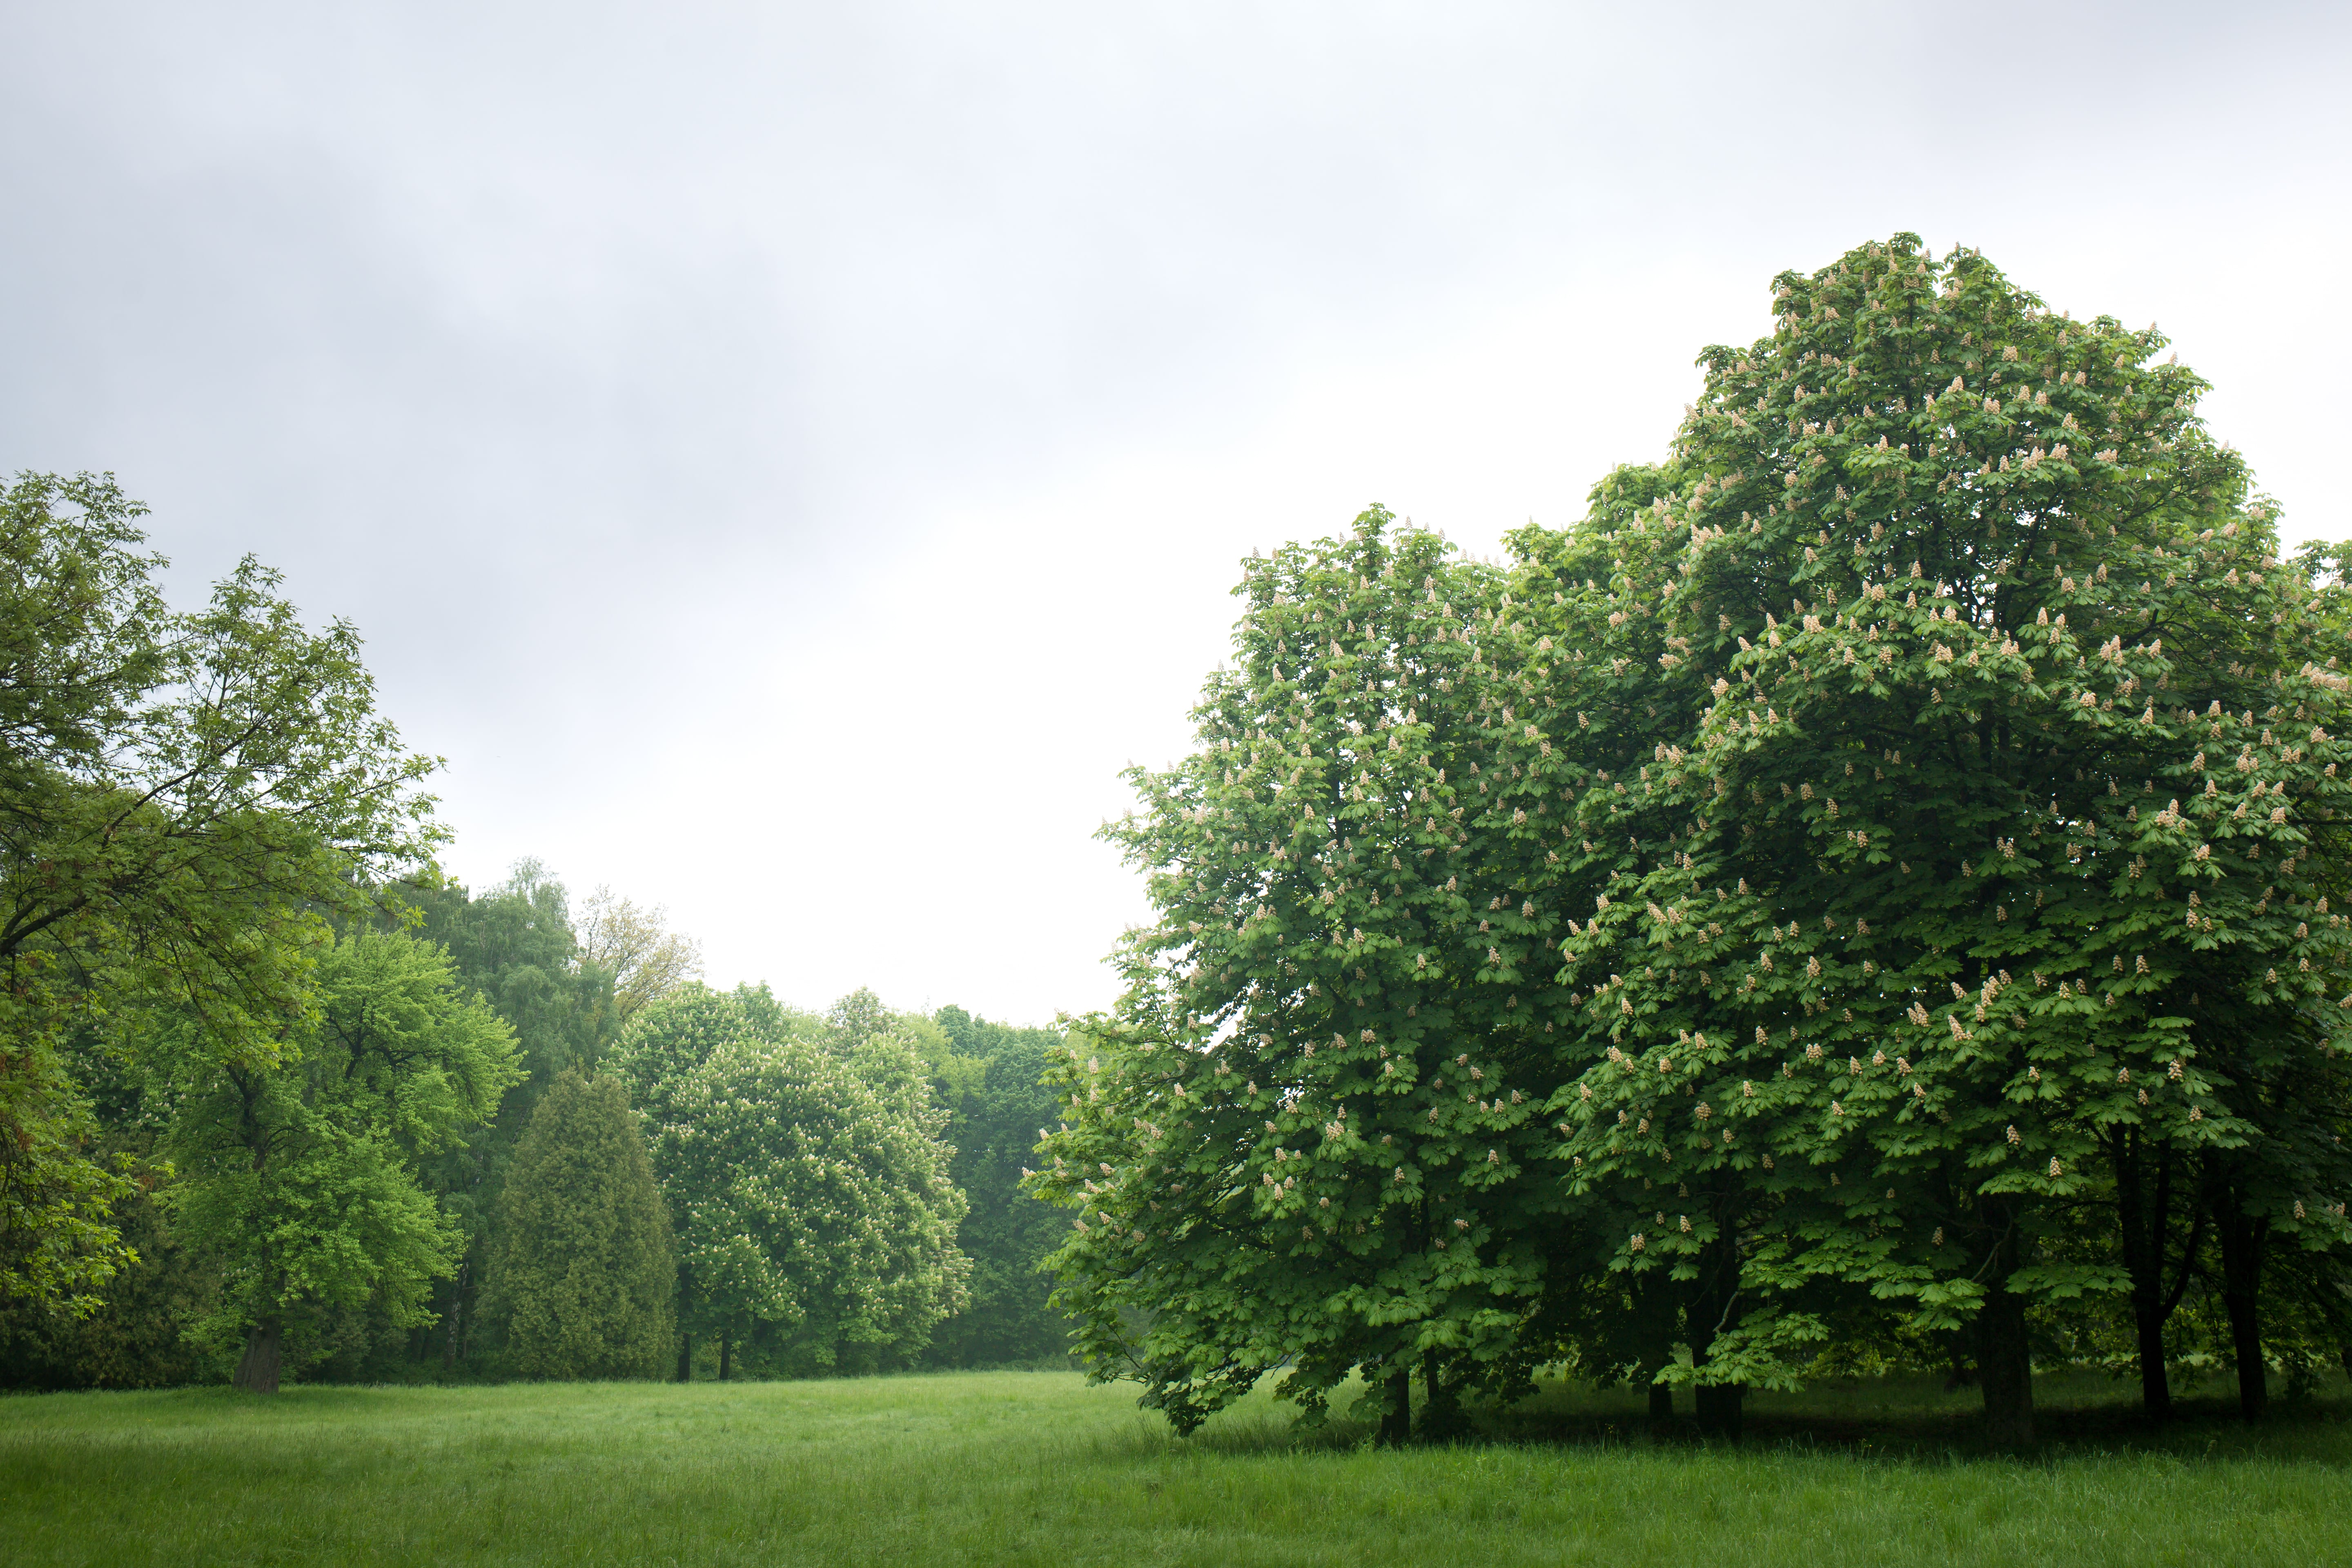 Forest of Large Chestnut Oak Trees on Green Grass and Light Sky